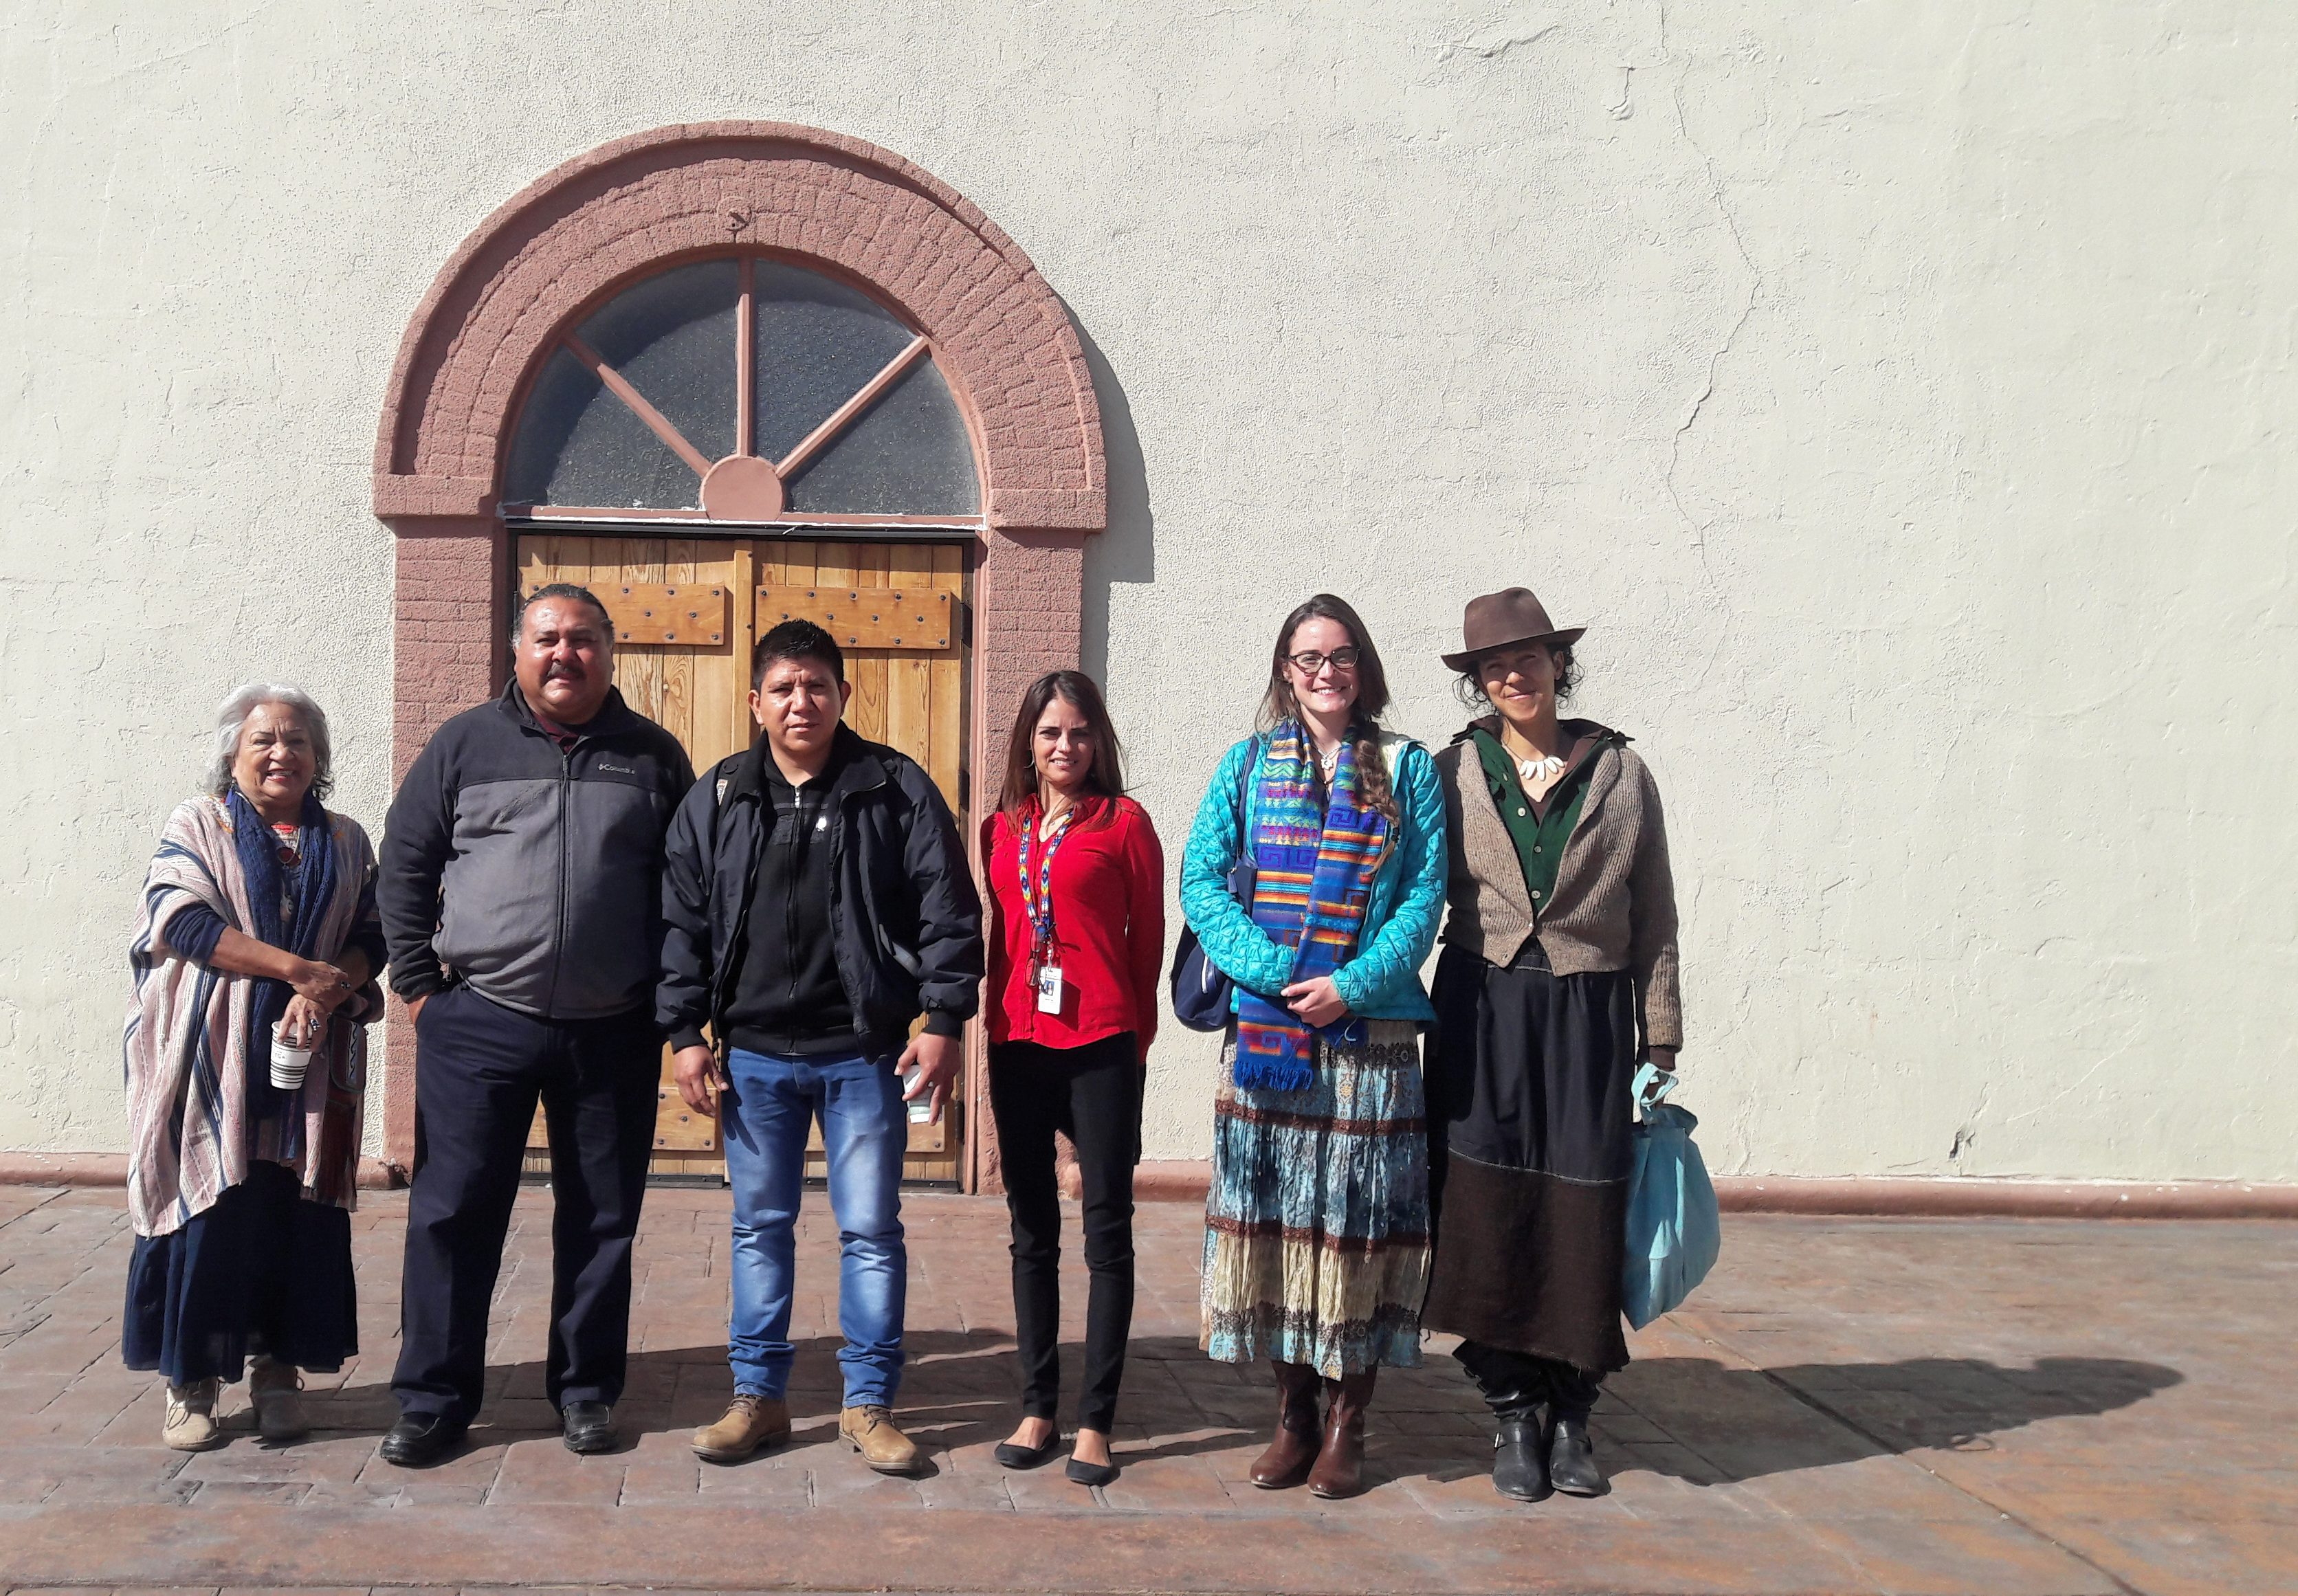 Representatives of Mexica, Tiwa, Maya Mam, Eastern Shoshone and Quechua descent stand in front of the Ysleta Mission, the original site of the Ysleta del Sur Pueblo community.